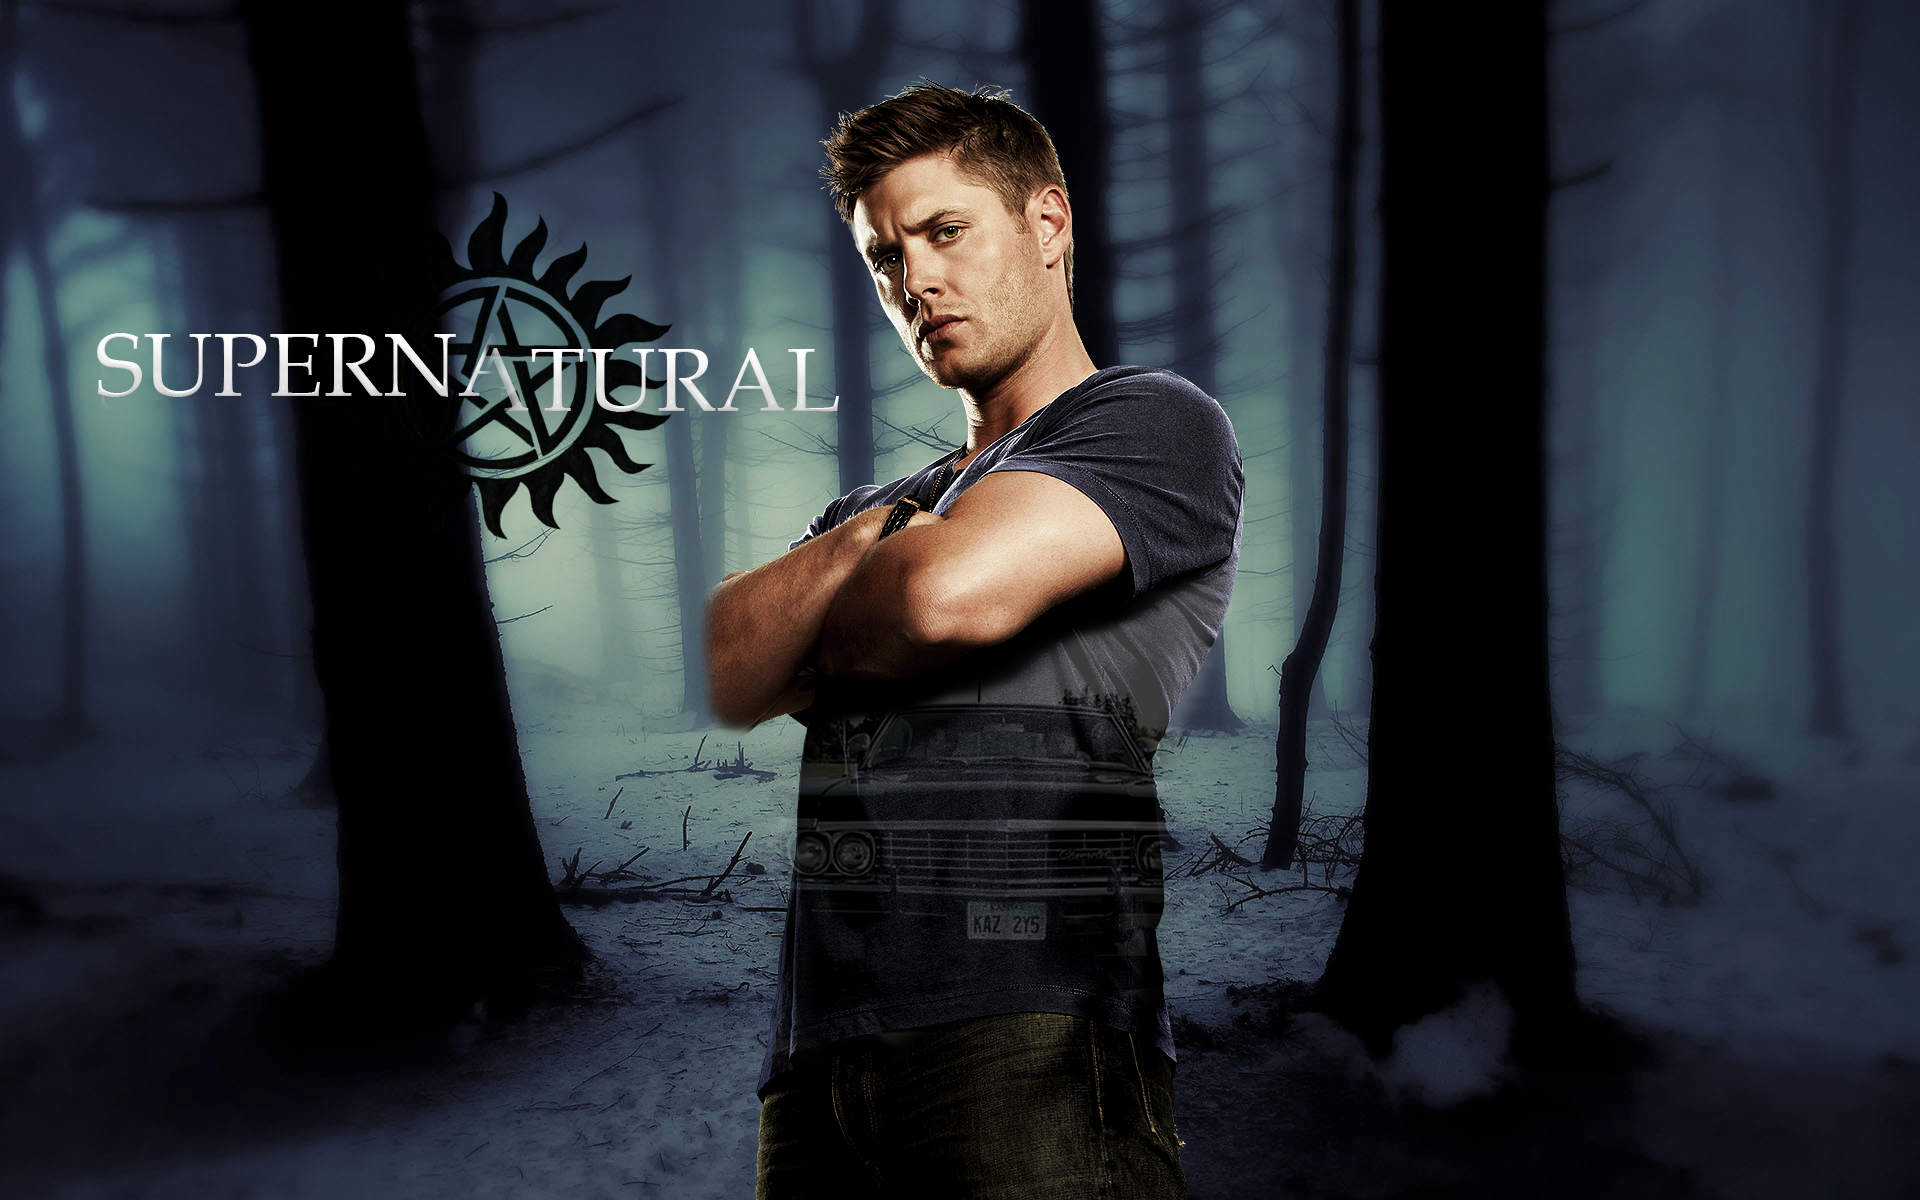 1336x768 Supernatural Tv Series Laptop Hd Hd 4k Wallpapers Images Backgrounds Photos And Pictures